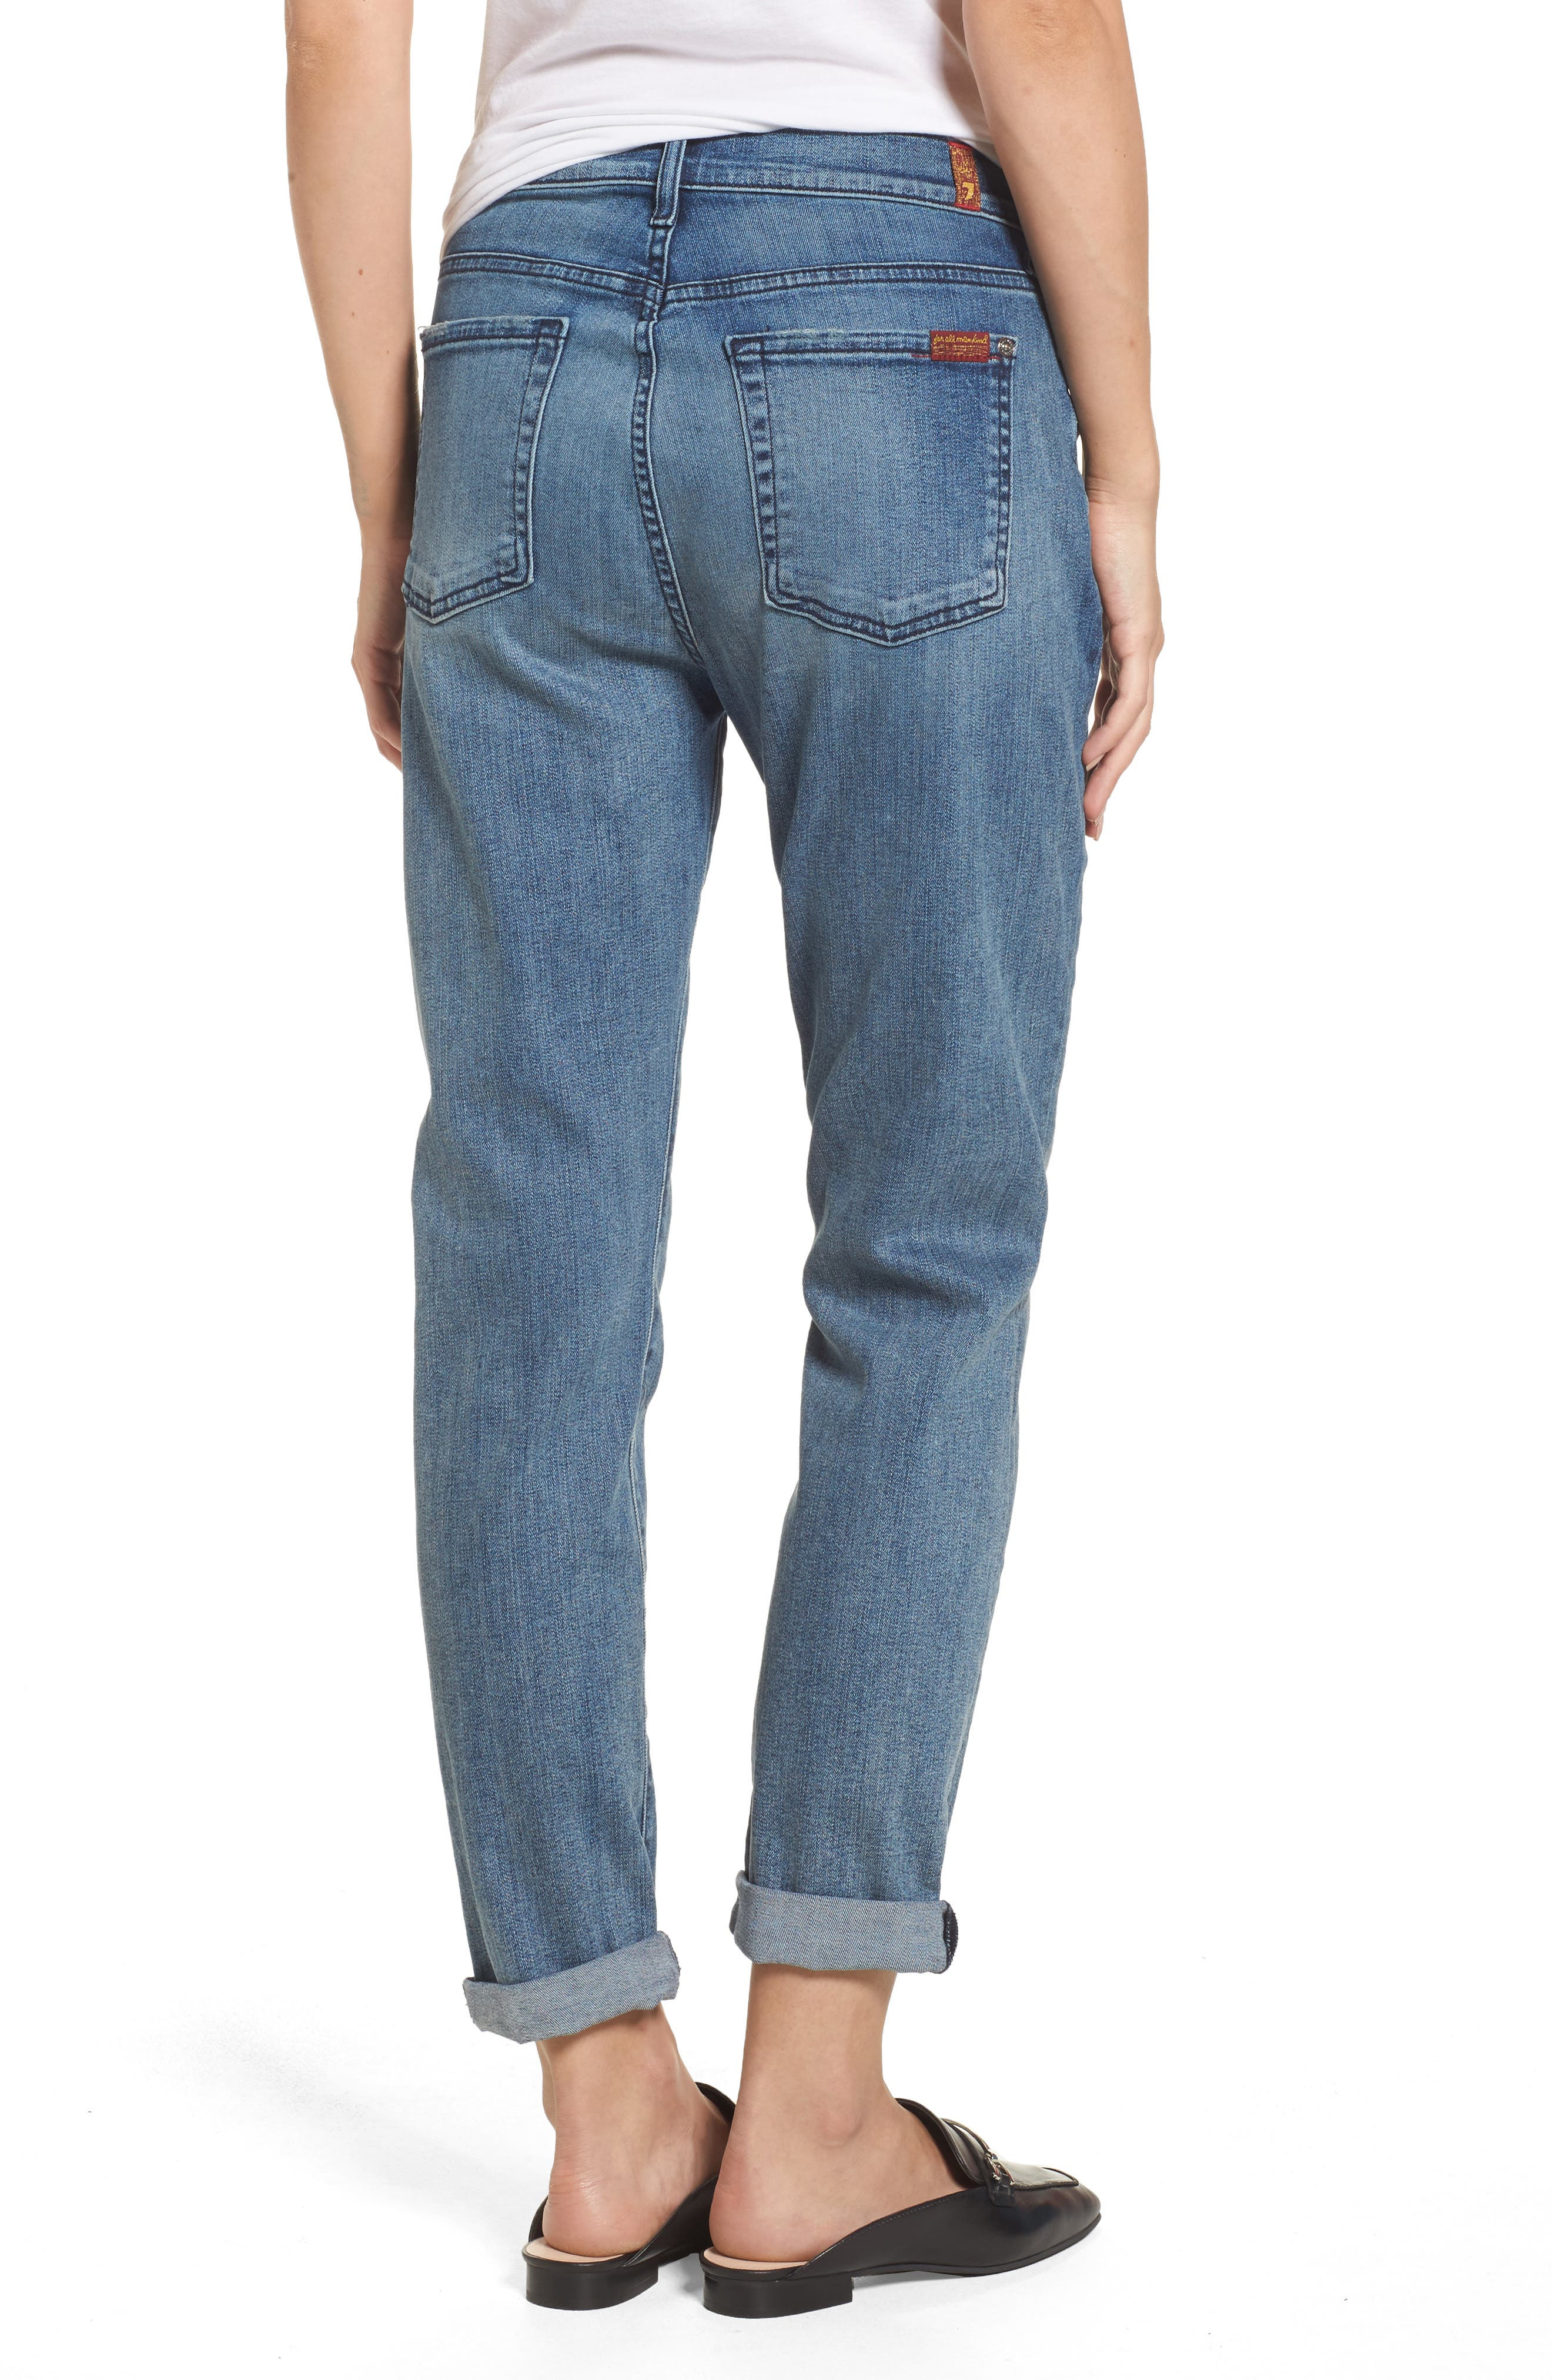 Josefina High Waist Crop Boyfriend Jeans,                             Alternate thumbnail 2, color,                             400